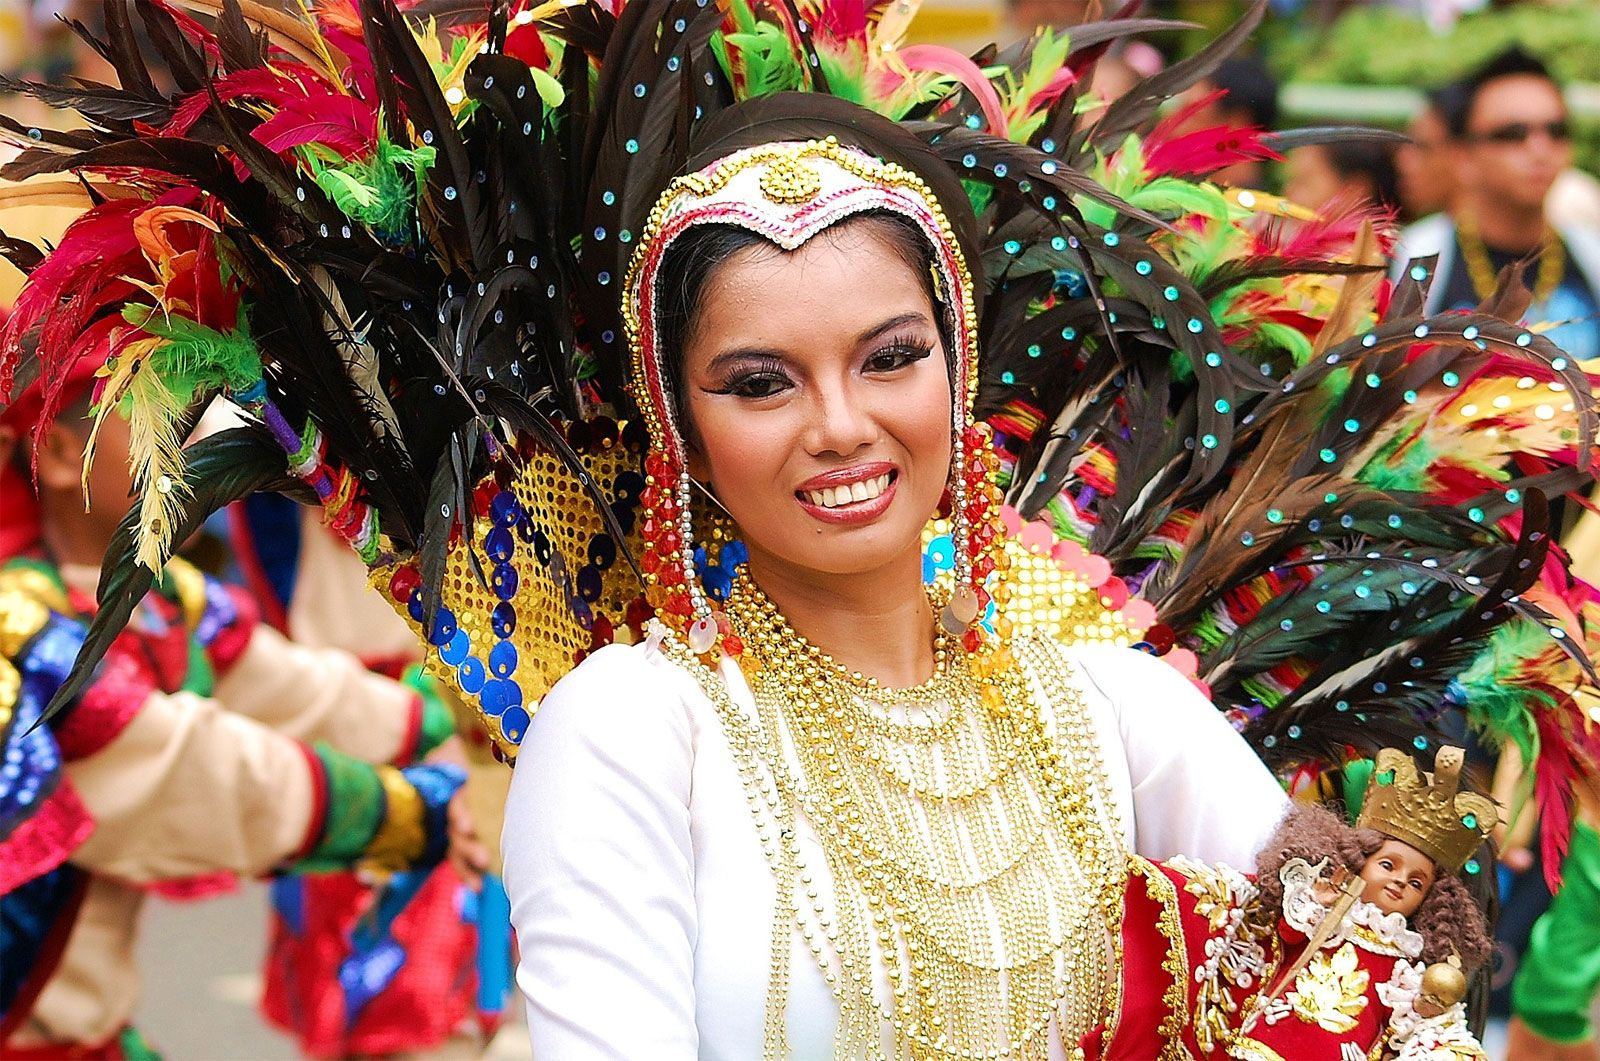 Top 10 Most Superior Ethnic Groups In The World